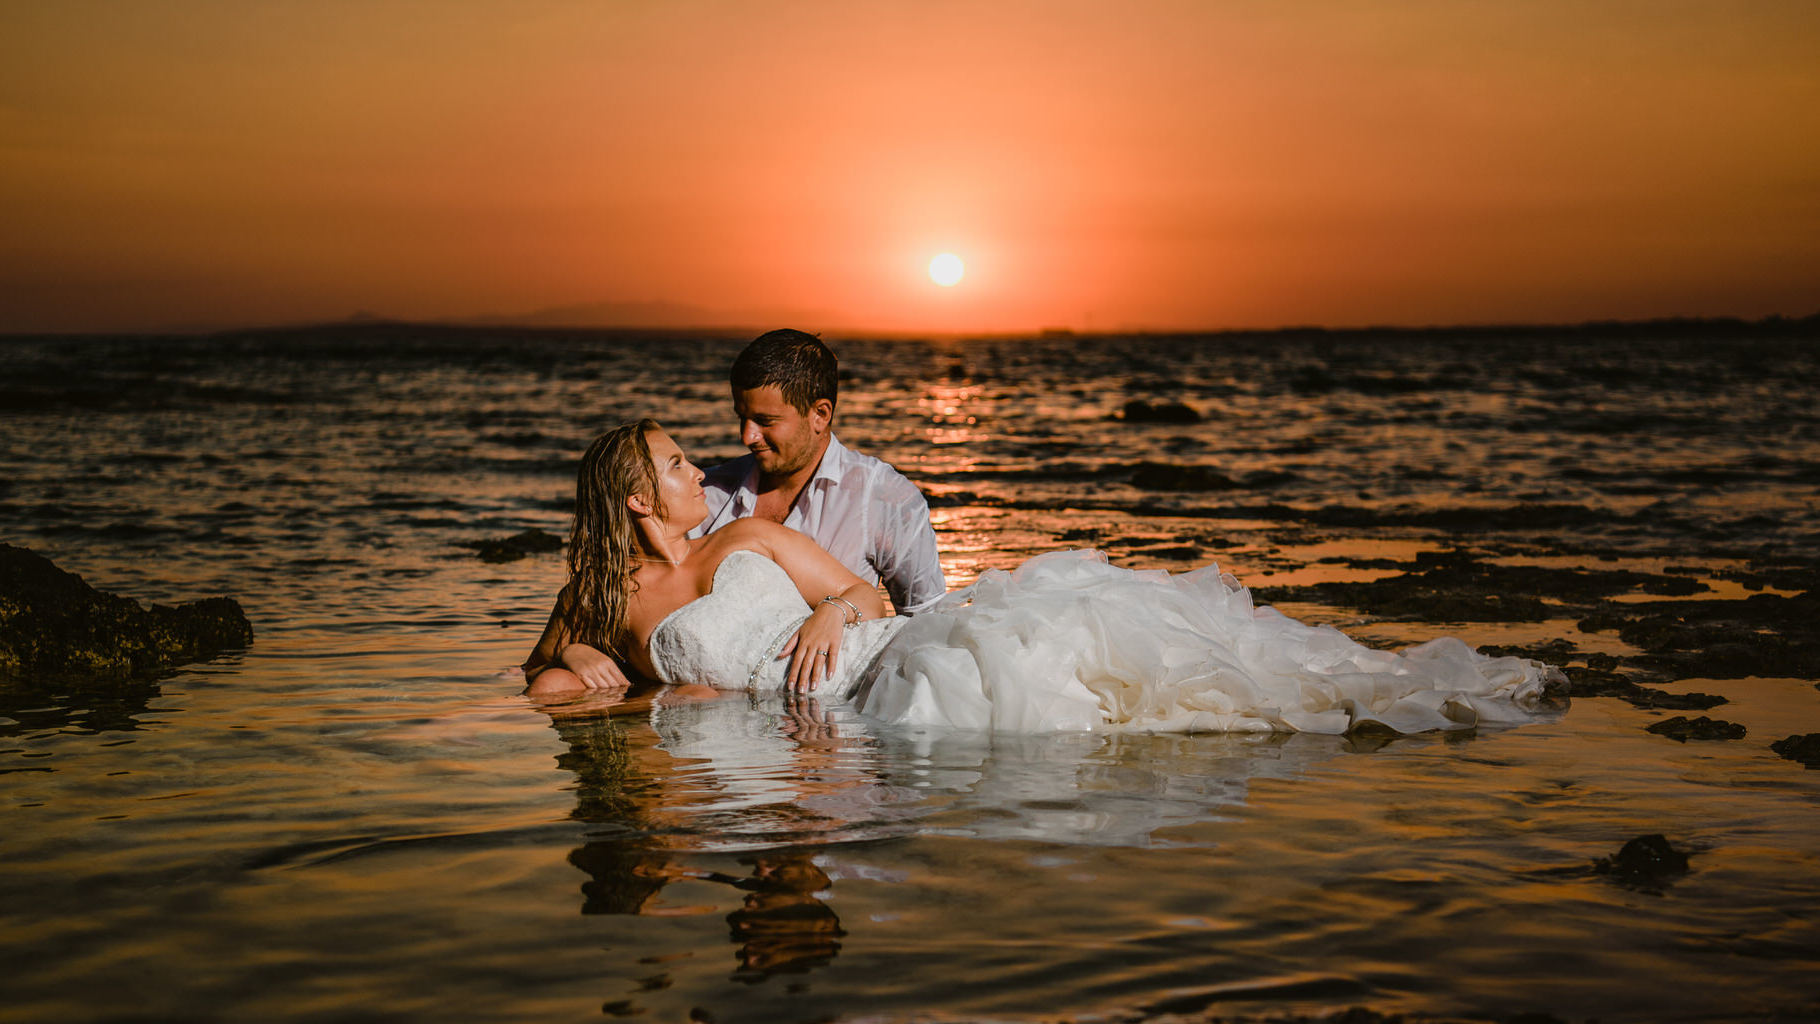 Liopetro - Cyprus Wedding Photographer 4